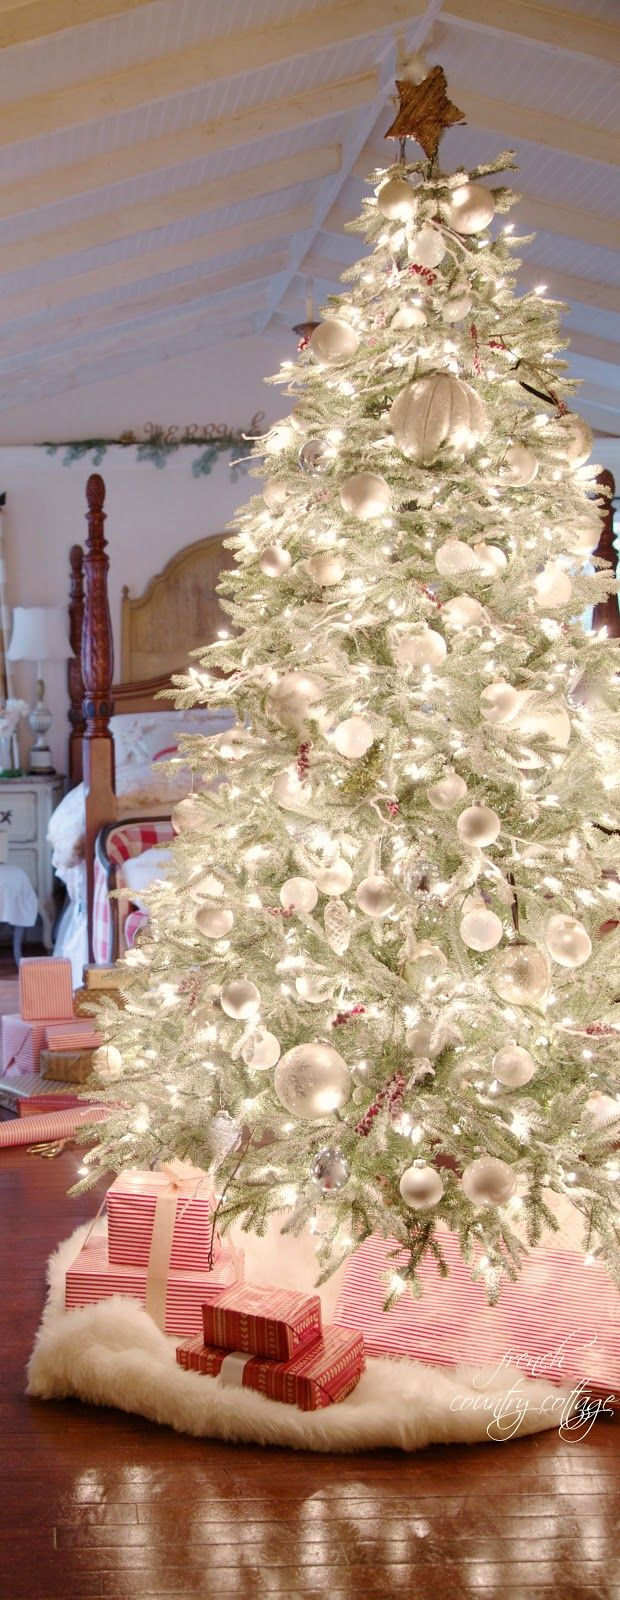 FRENCH COUNTRY COTTAGE: A very merry Christmas tree - this tree is absolutely stunning!